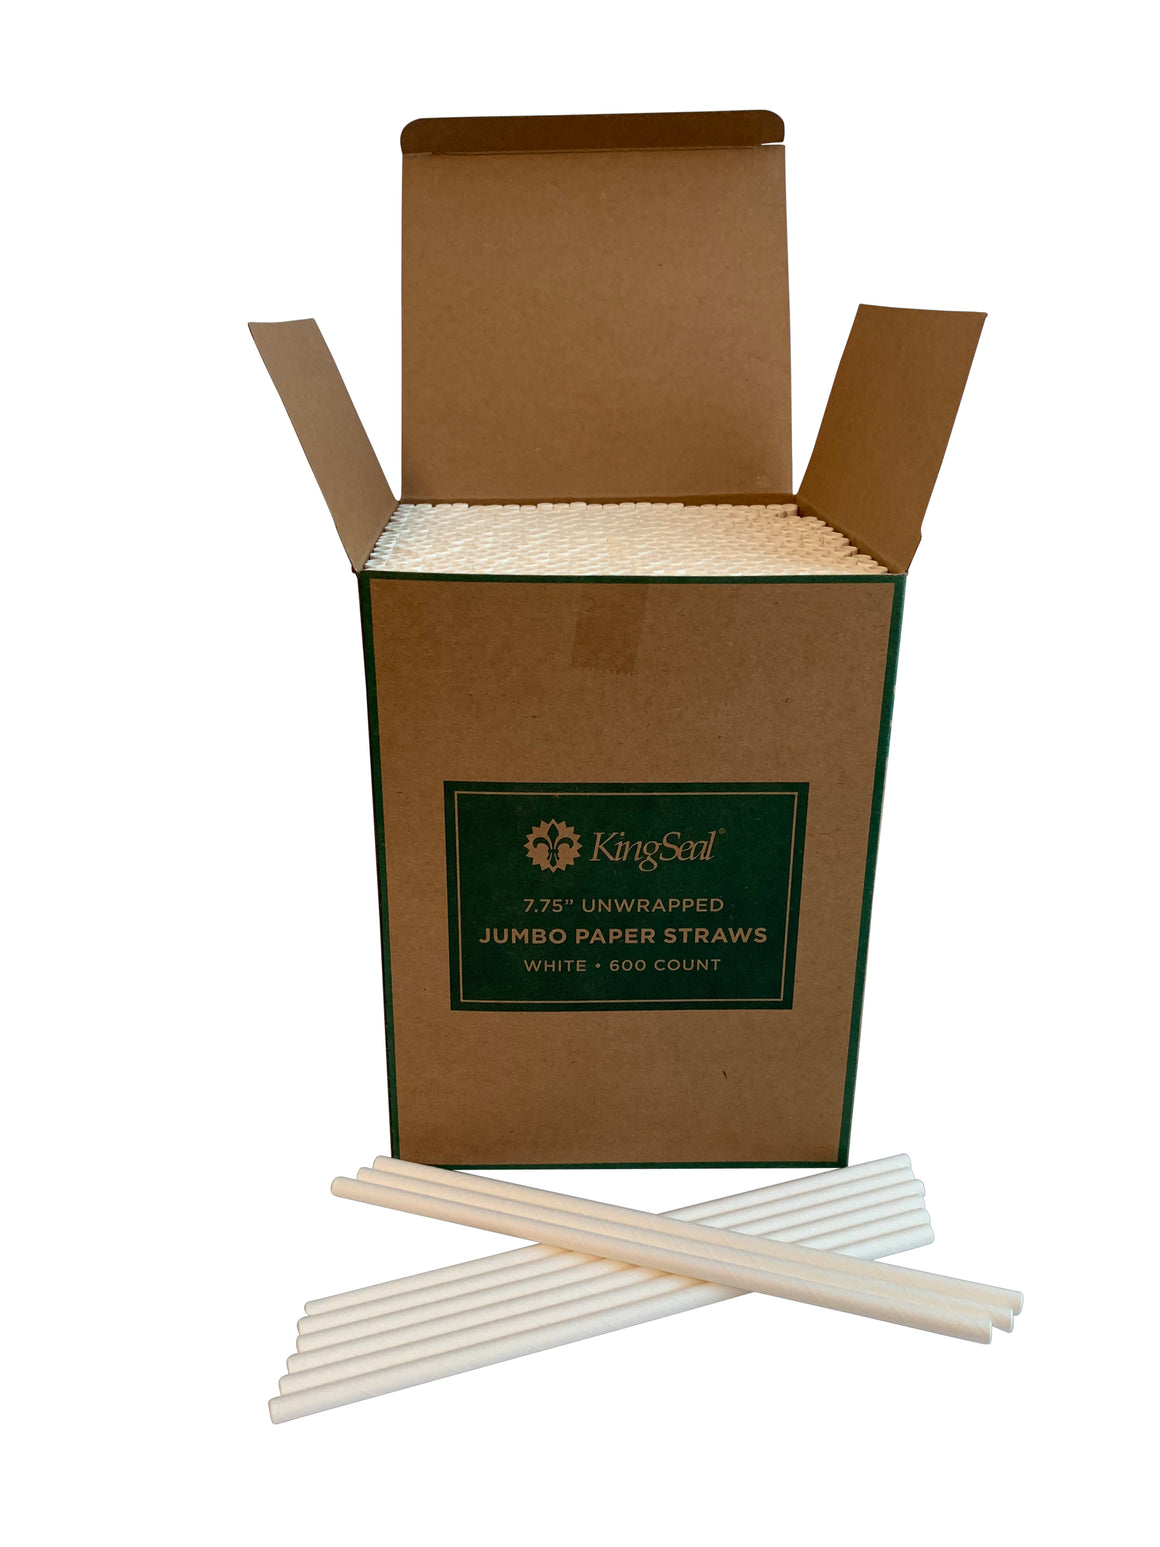 "Kingseal Disposable Paper Drinking Straws, White, Unwrapped, 7.75 inch Length, ""Jumbo"" Size, Bulk Pack"